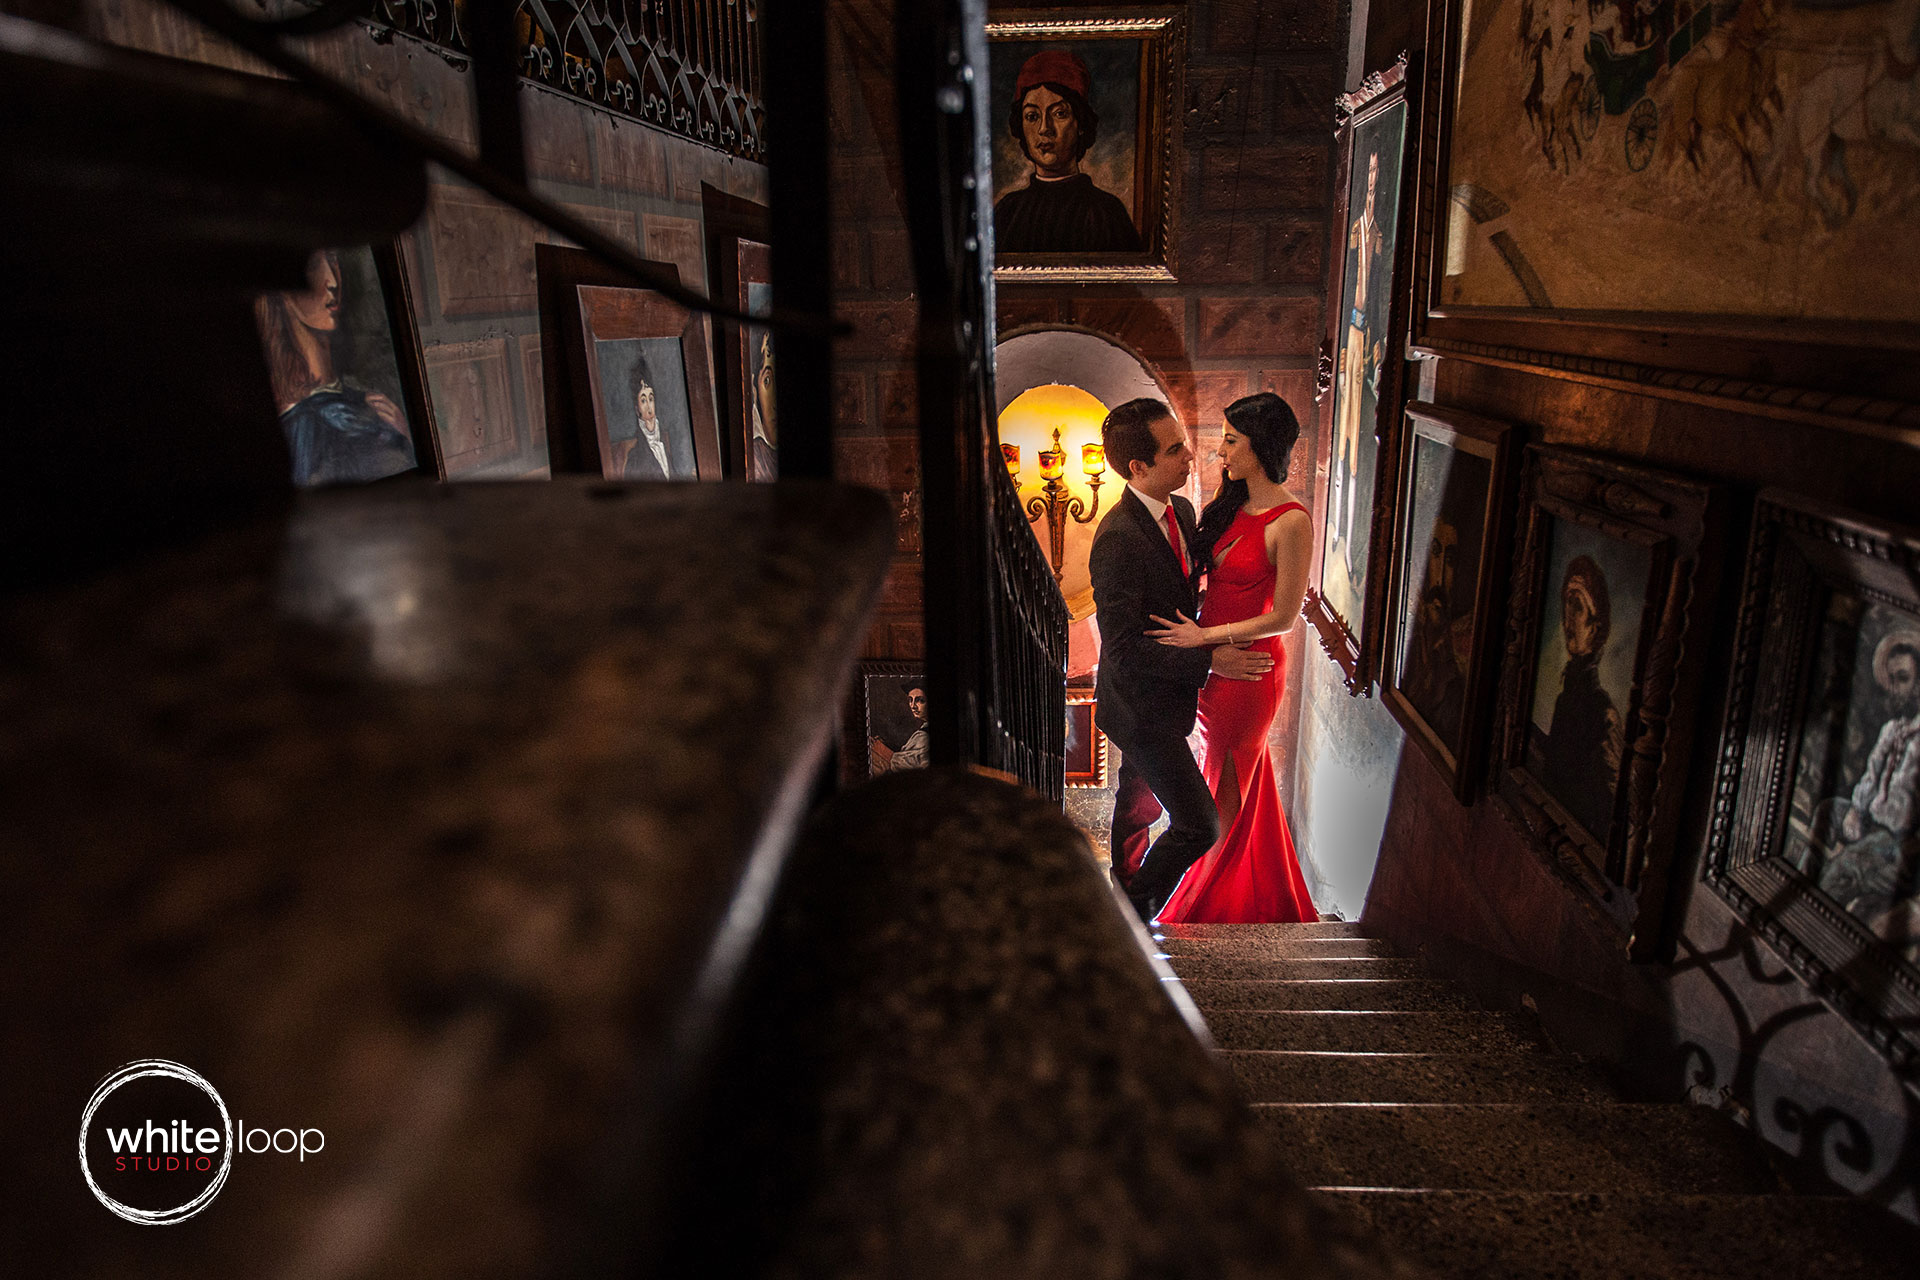 The bride and groom holding each other in the hallway surrounded by artistic paintings.